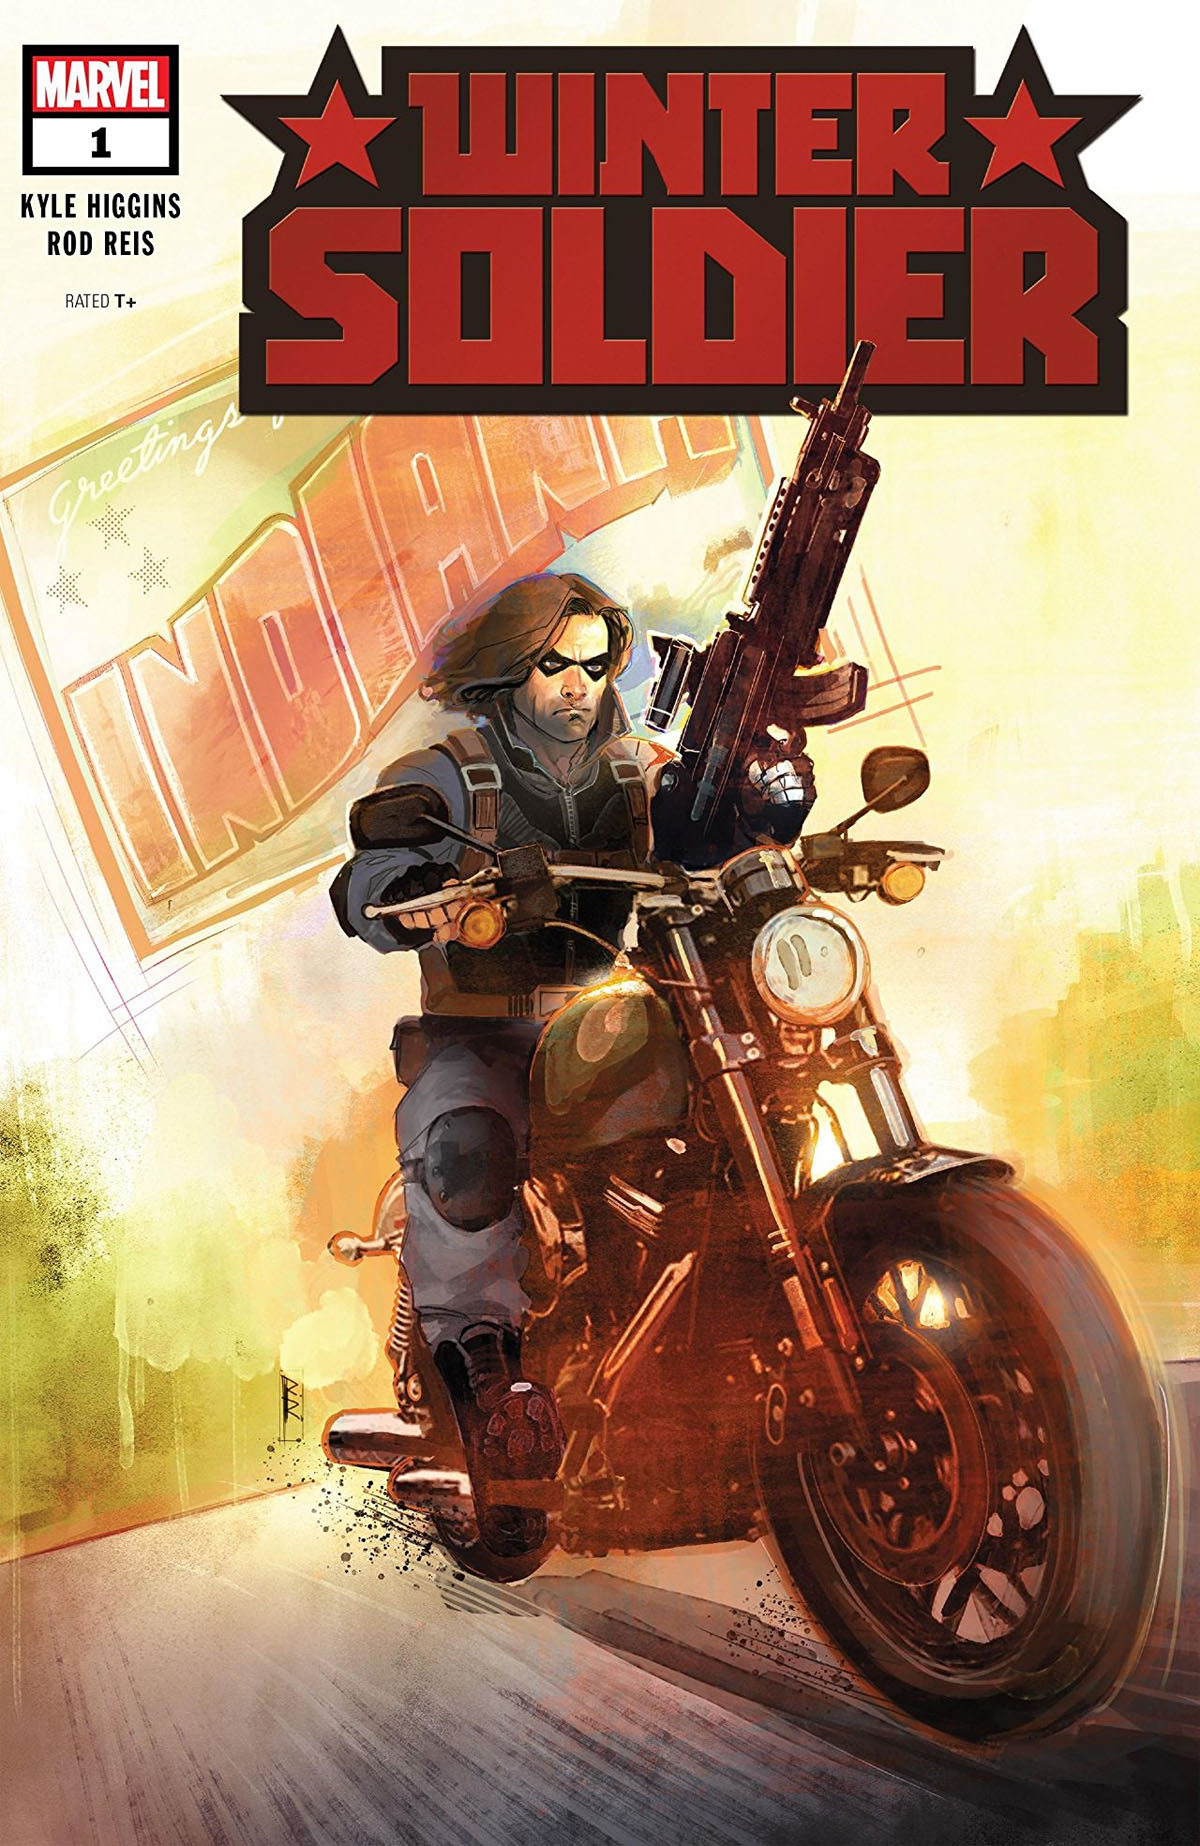 Winter Soldier #1 cover